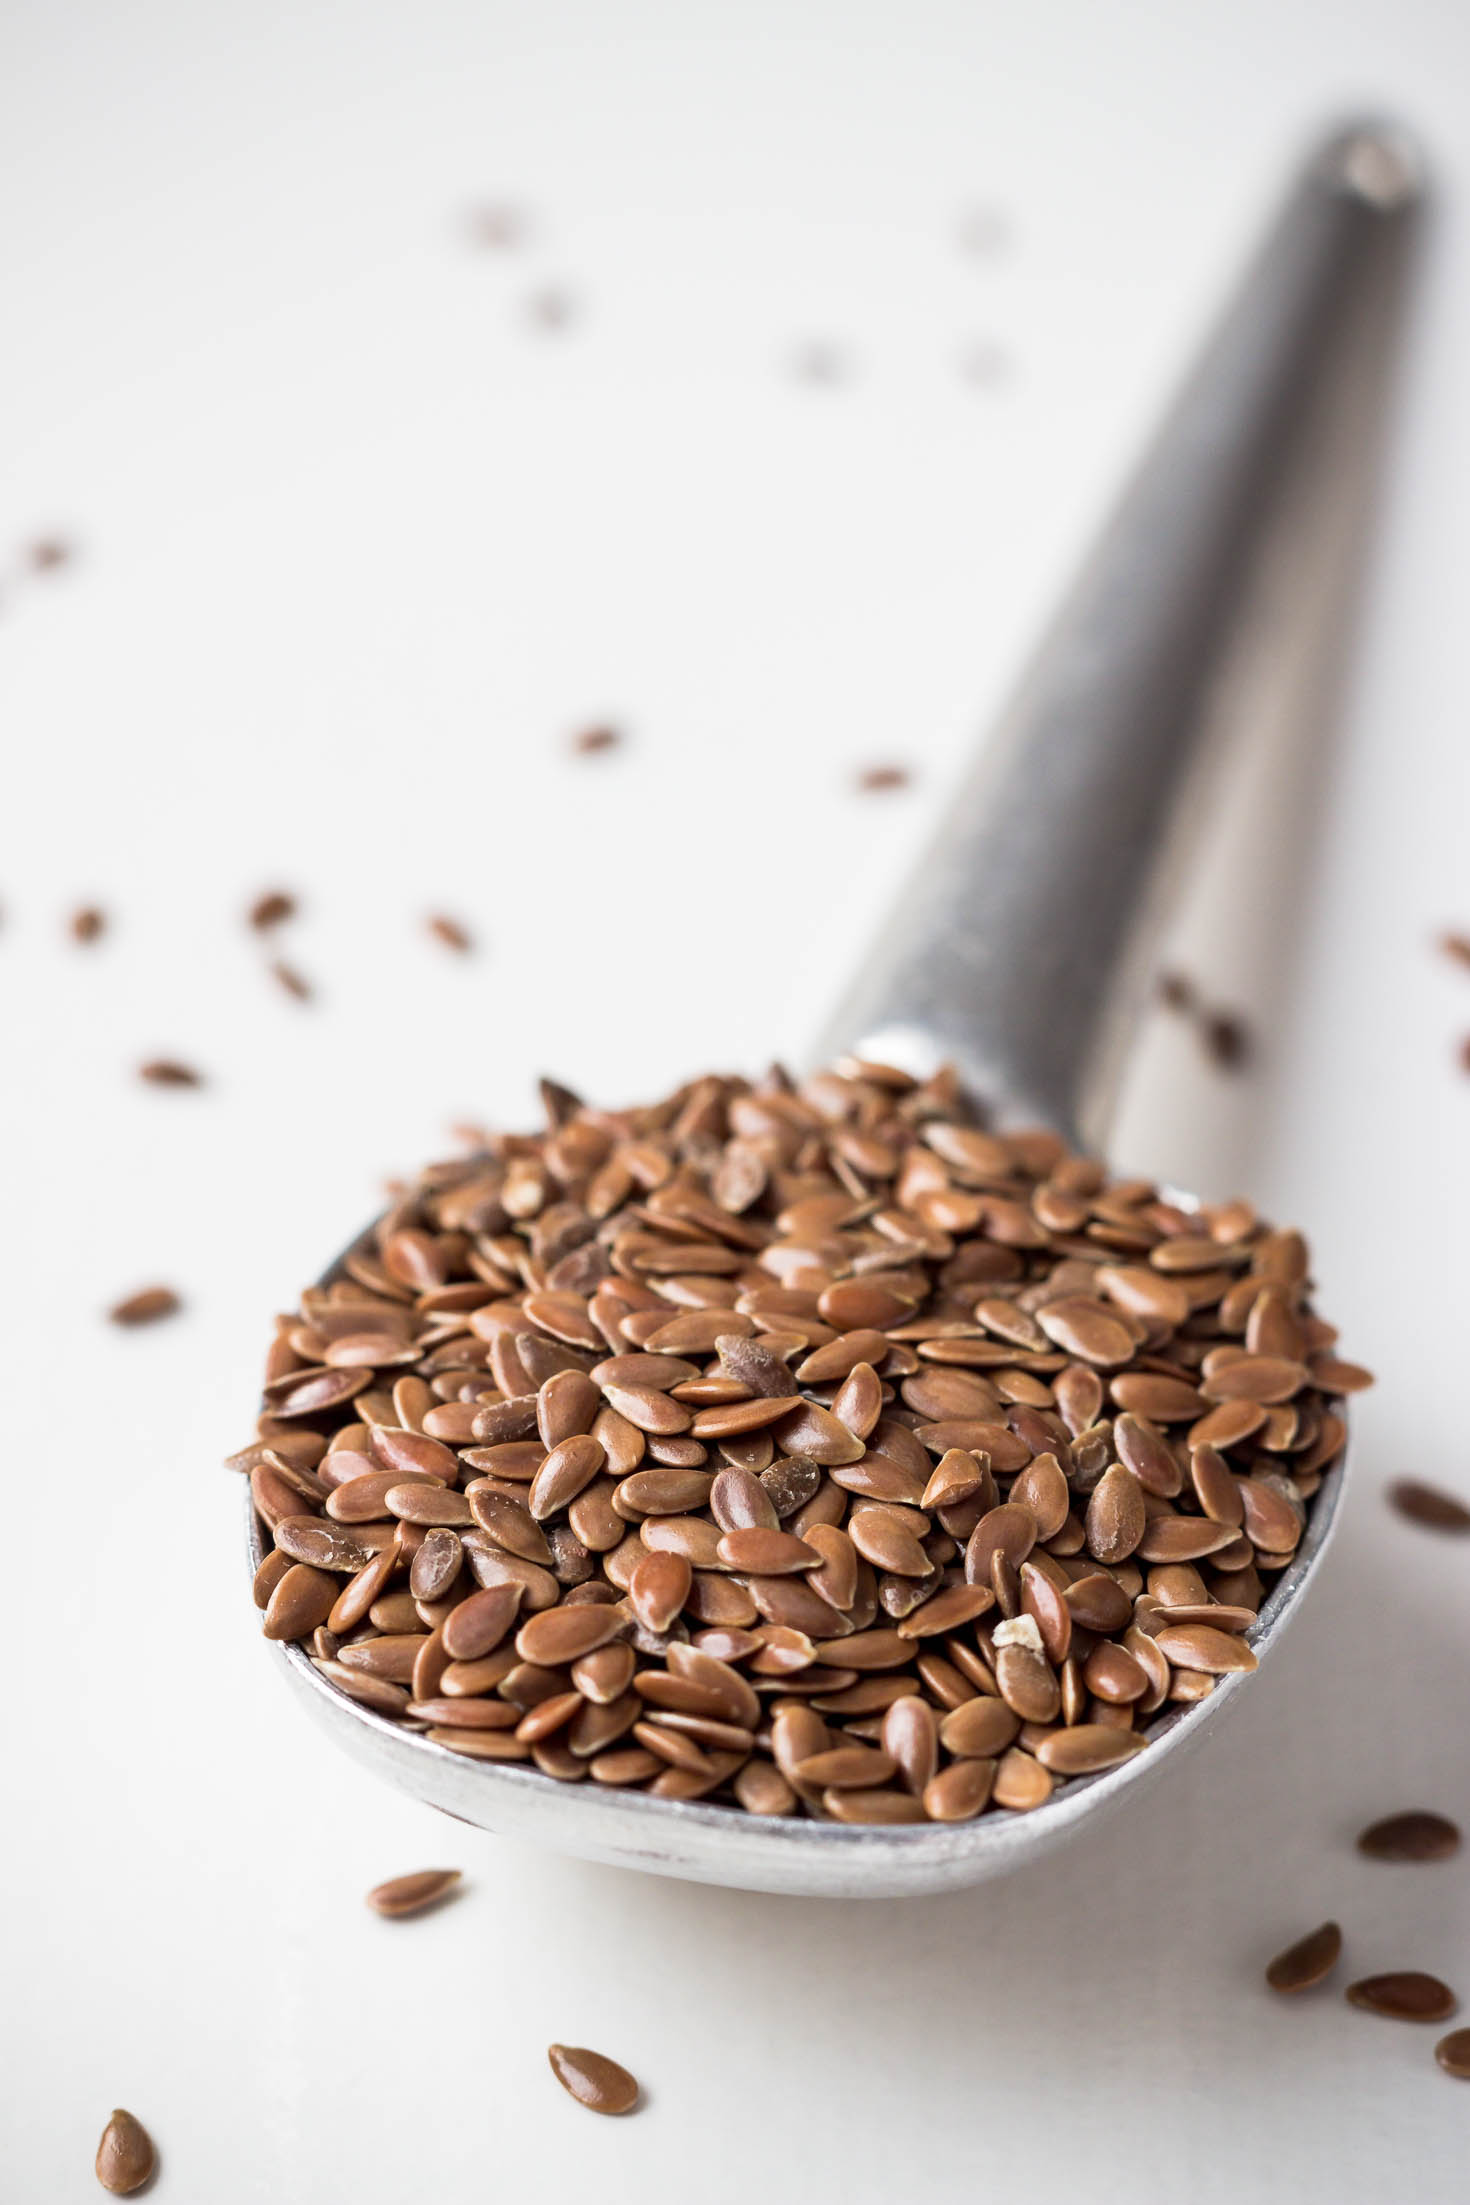 flaxseeds for pumpkin spice latte smoothie. ground flaxseeds make the smoothie thicker